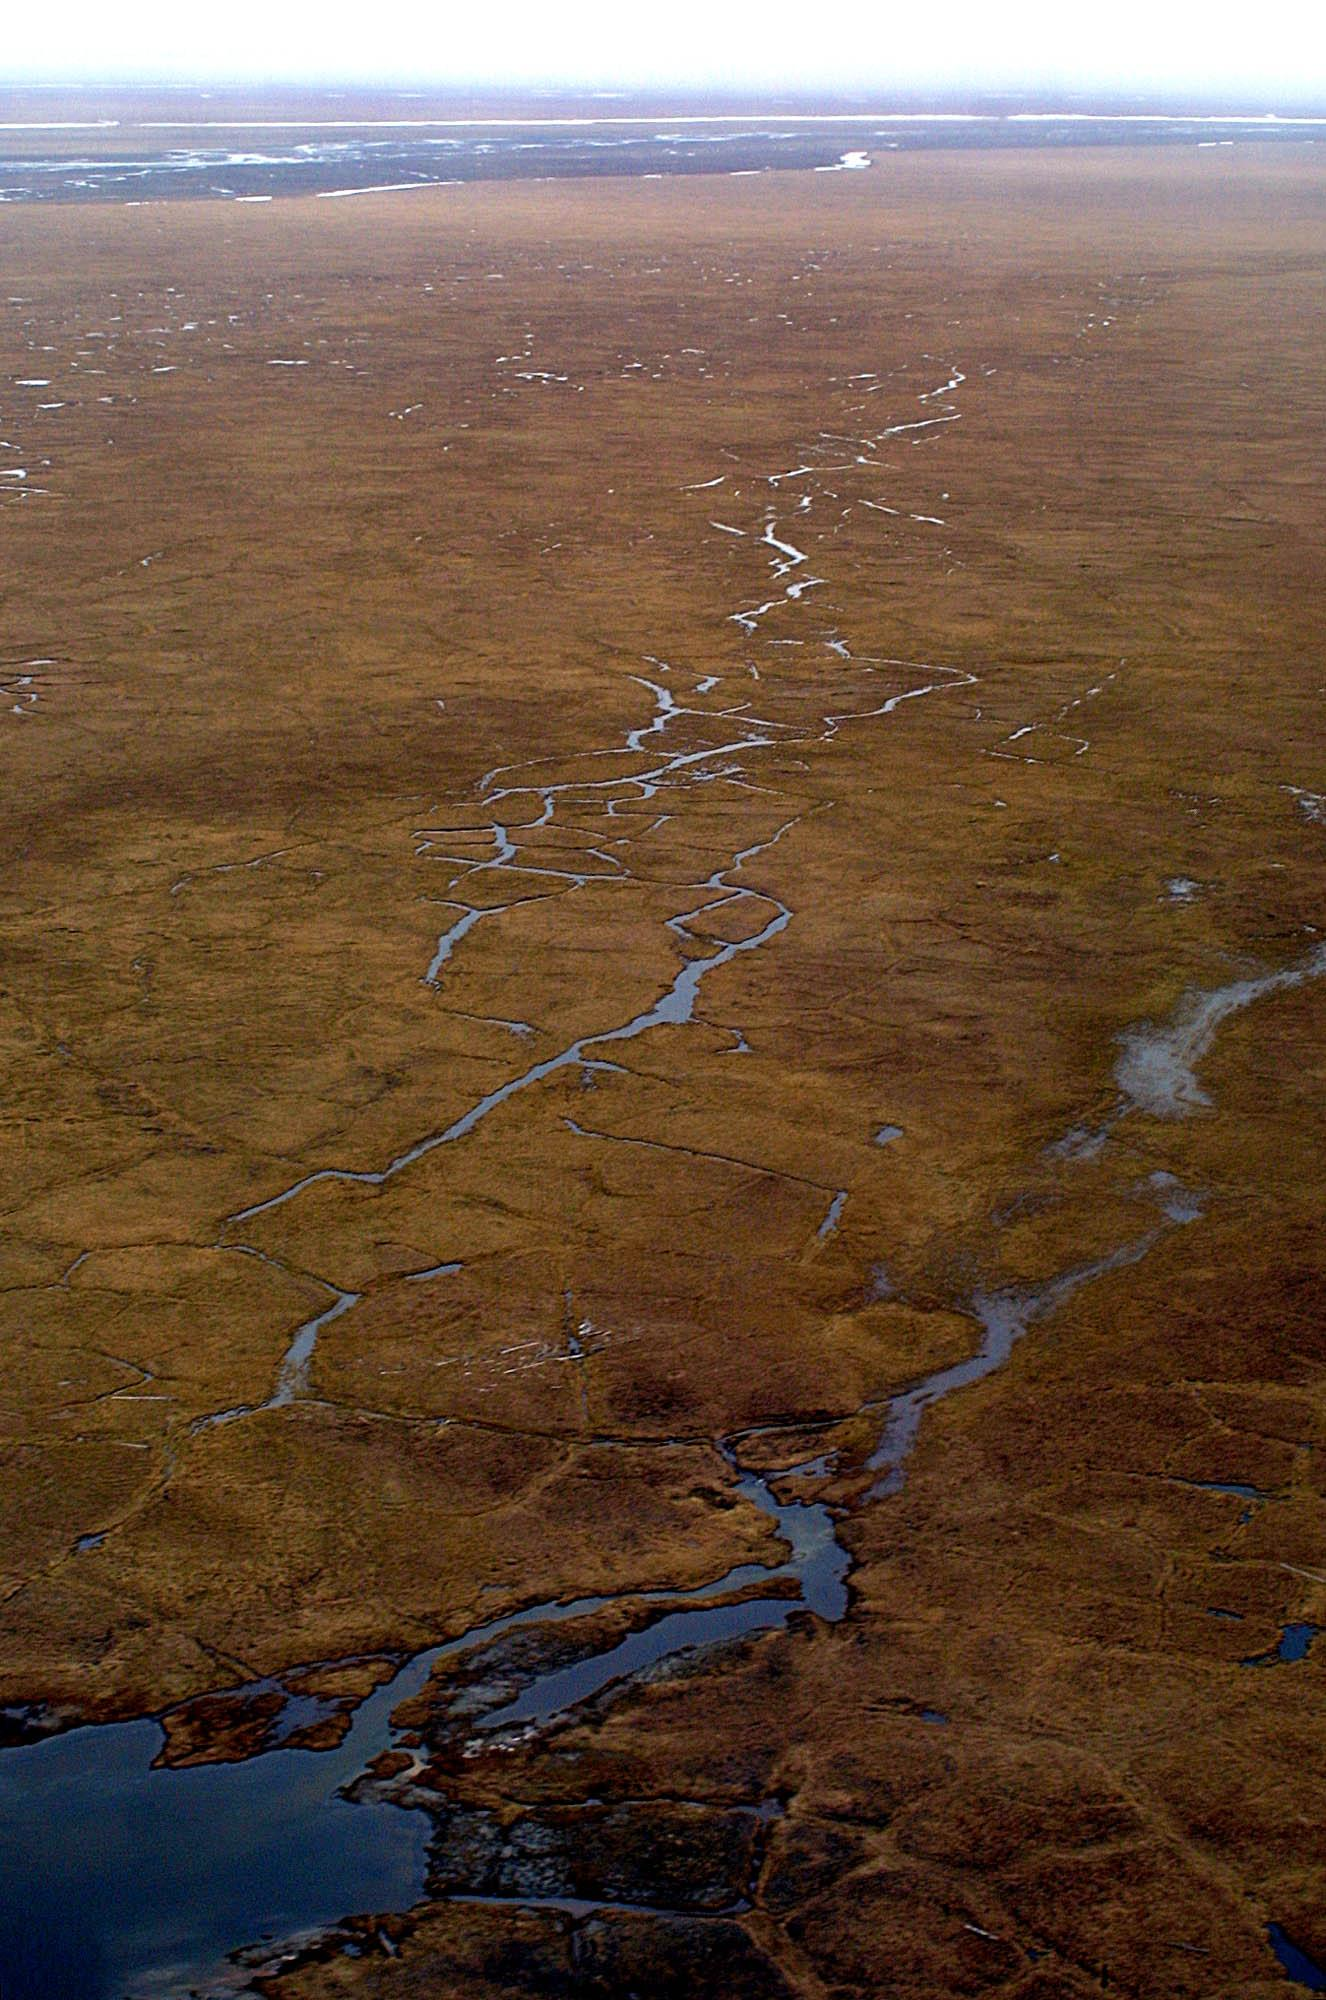 Obama seeks bigger wilderness designation in Alaska refuge